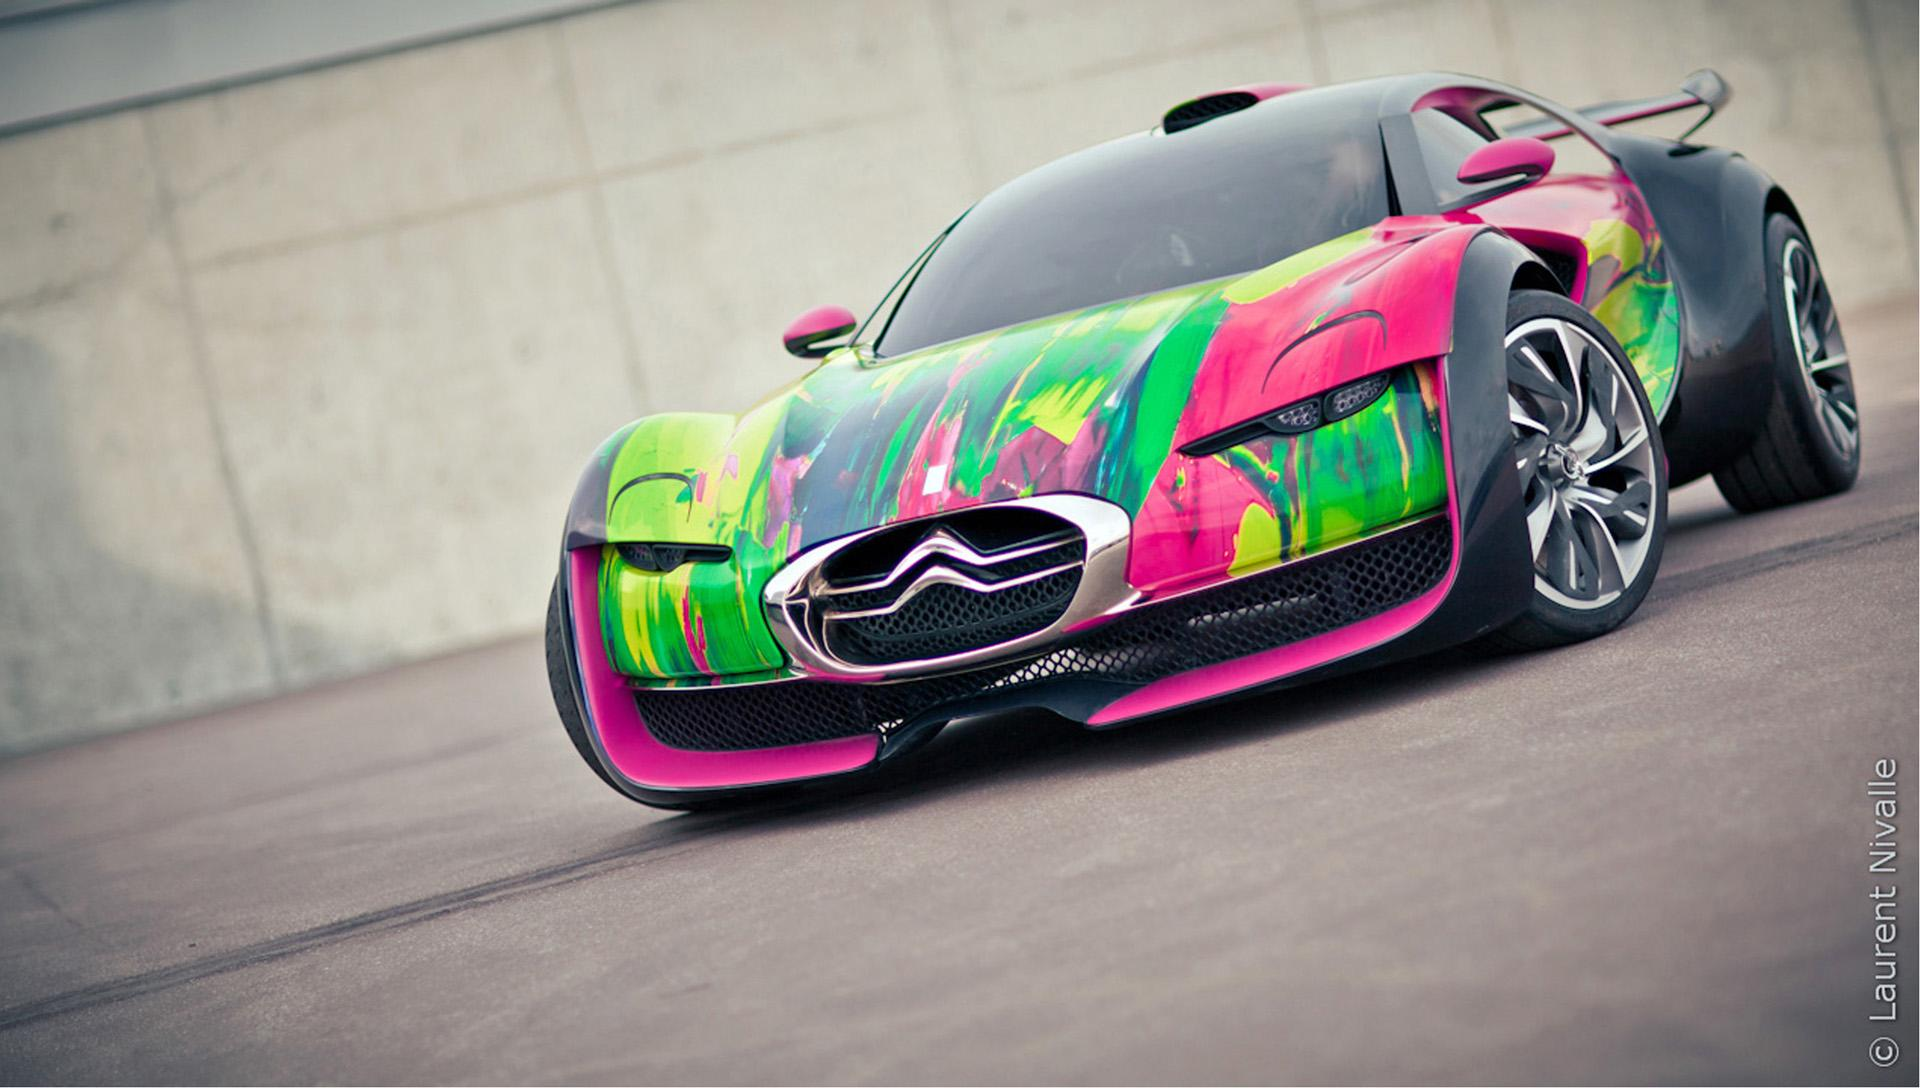 2010 citroen survolt art car concept image http www. Black Bedroom Furniture Sets. Home Design Ideas